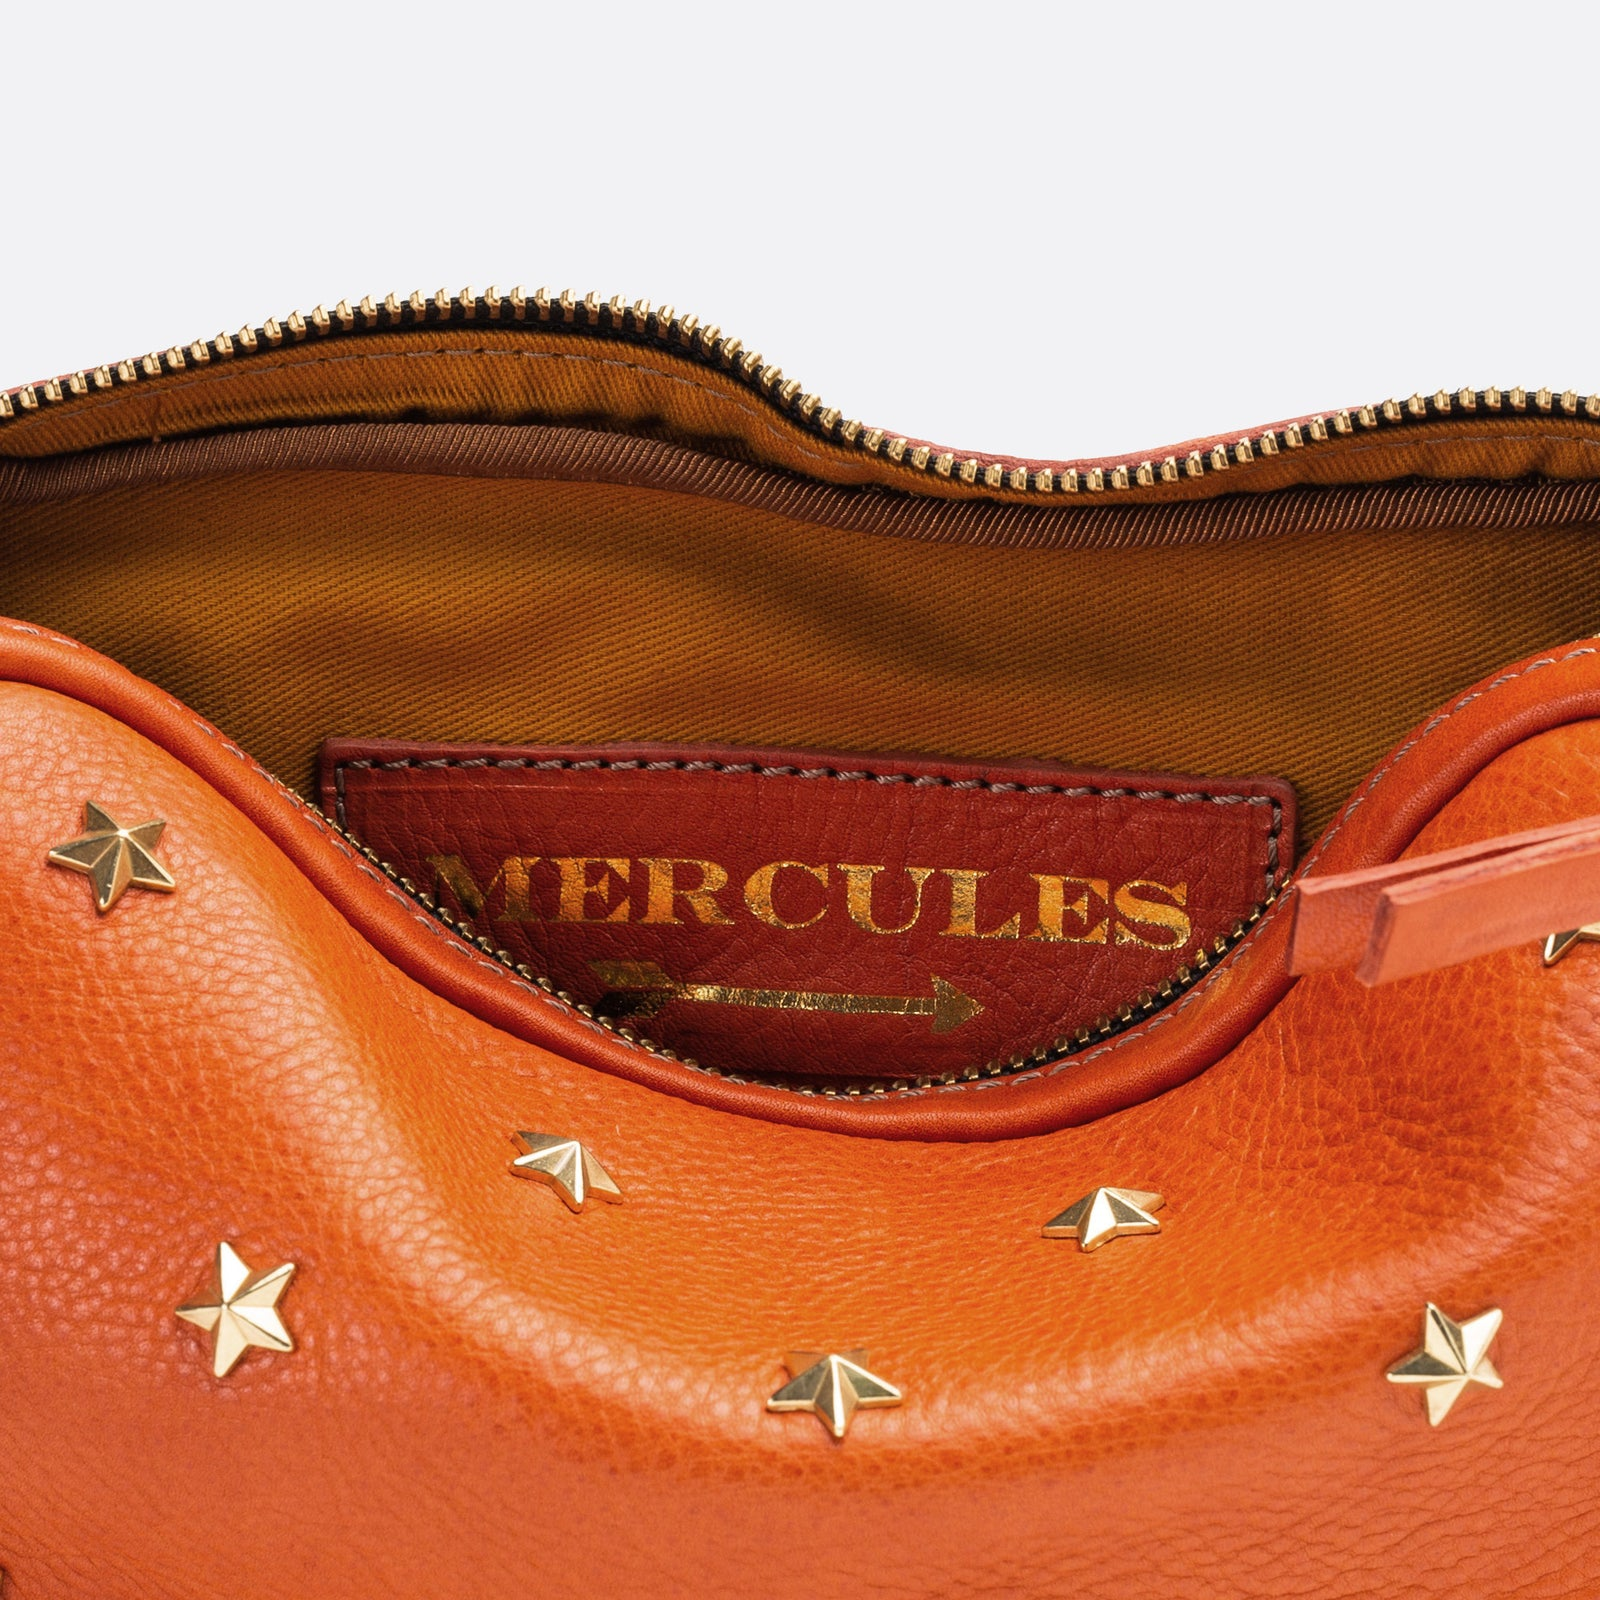 Mercules Dixie Bag Orange